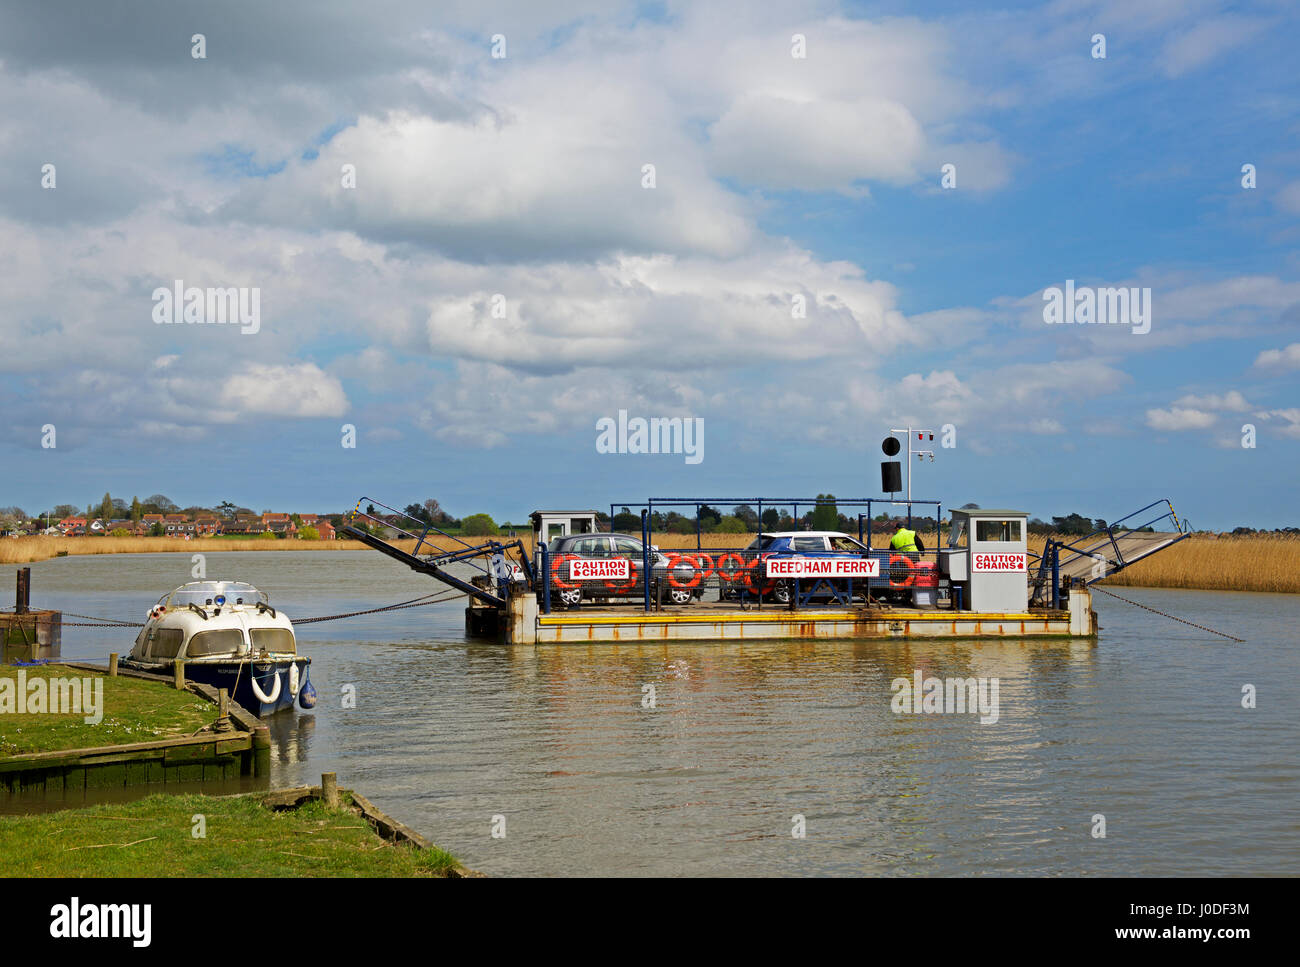 car-ferry-across-the-river-yare-reedham-norfolk-england-uk-J0DF3M.jpg